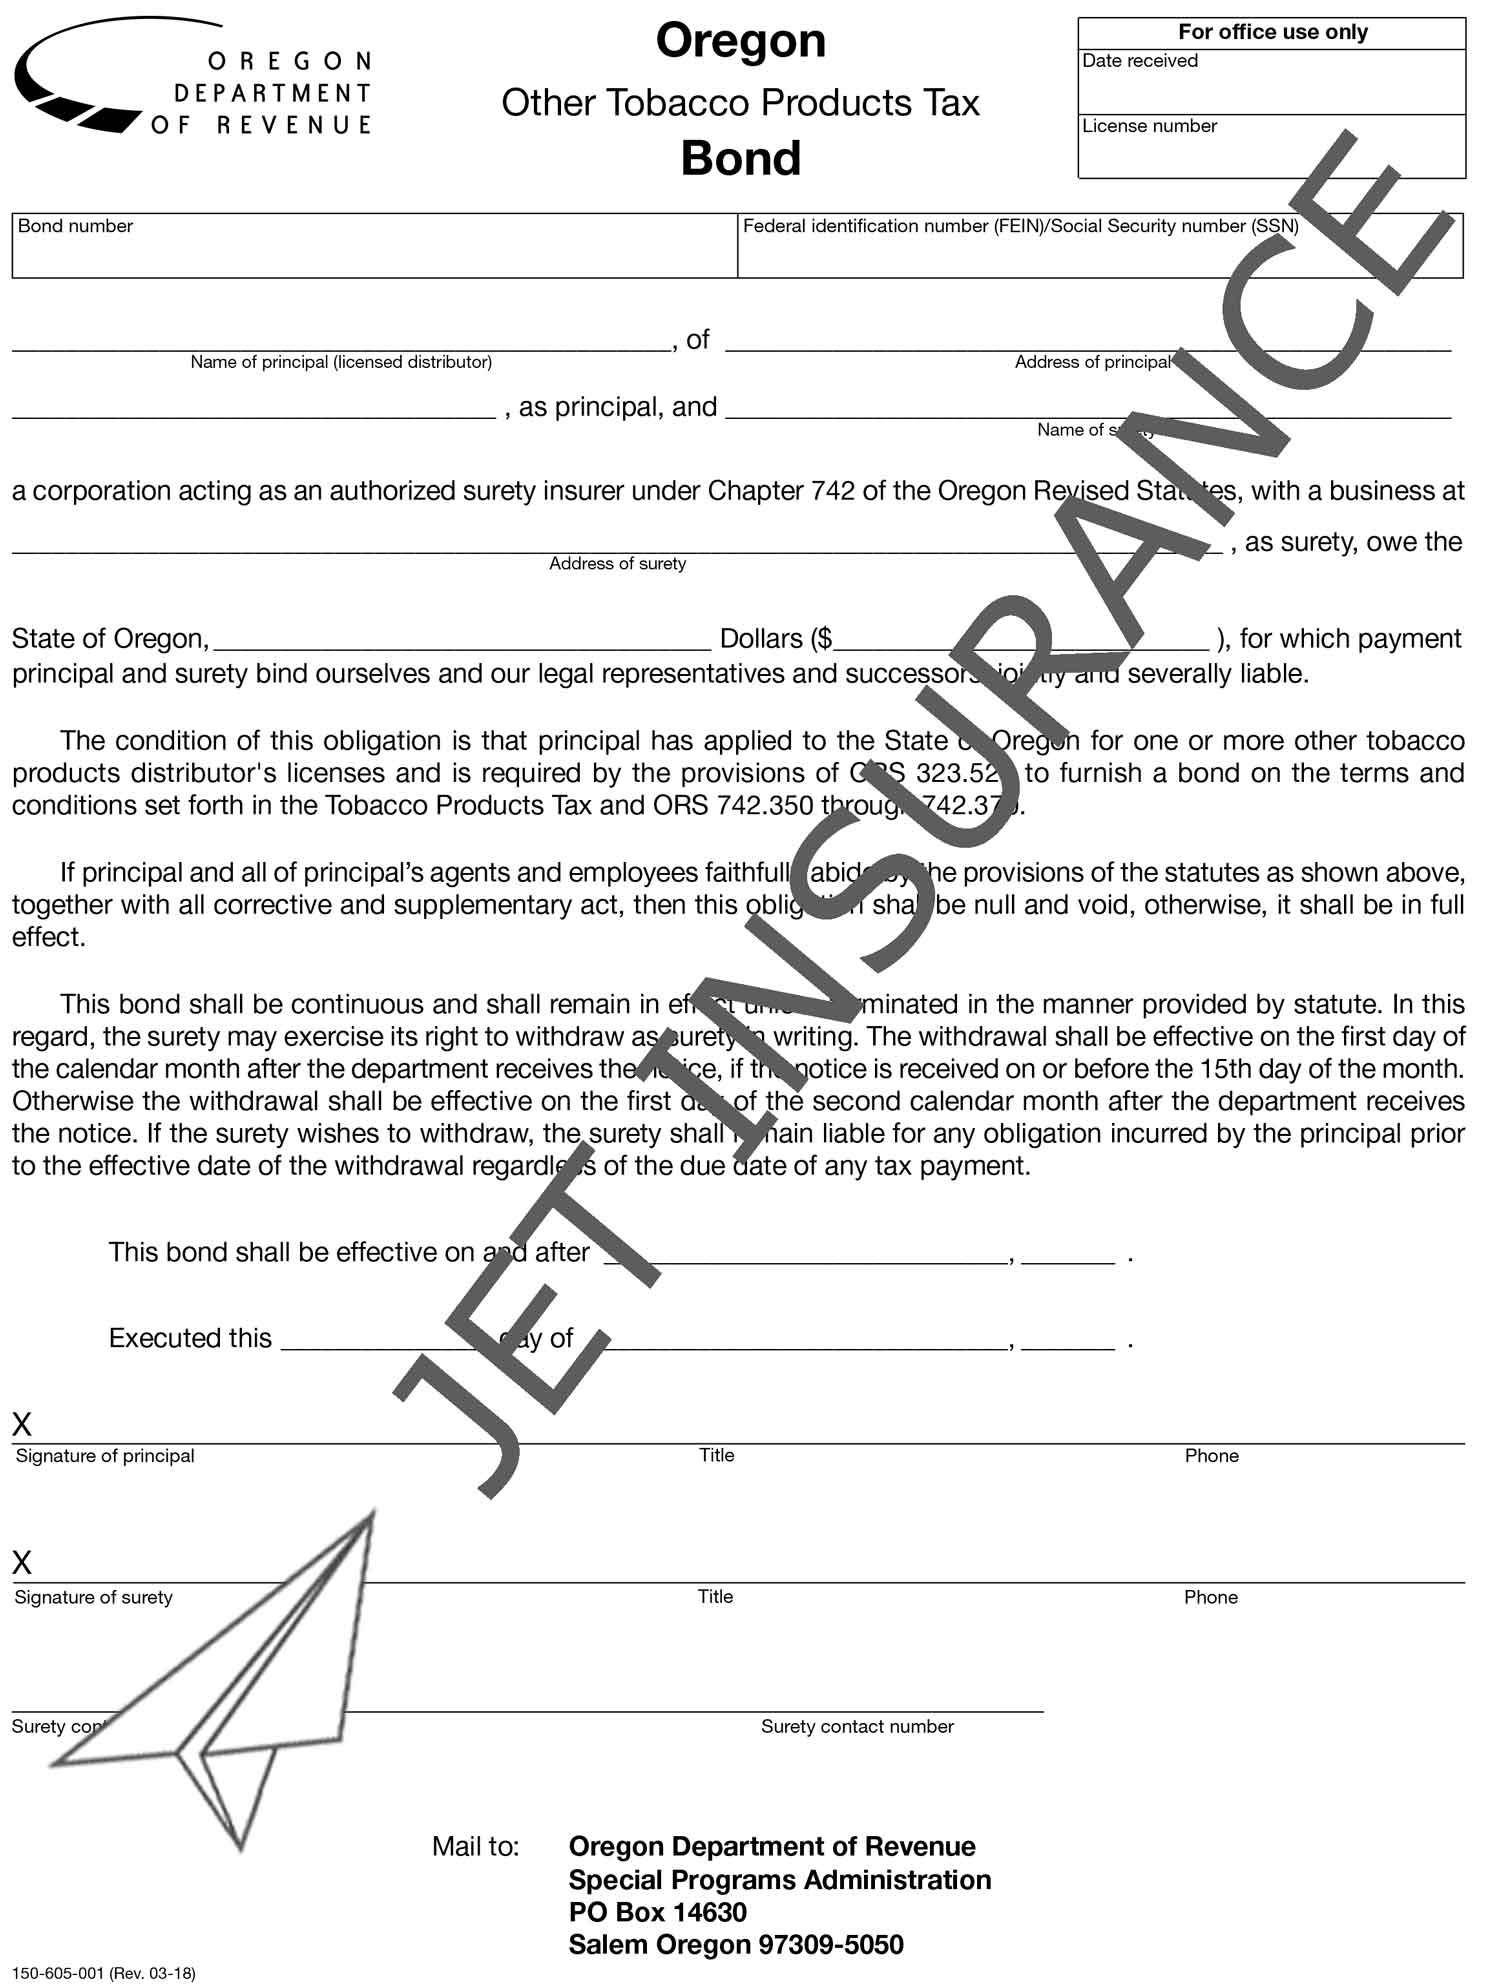 Oregon Other Tobacco Products Tax Bond Form